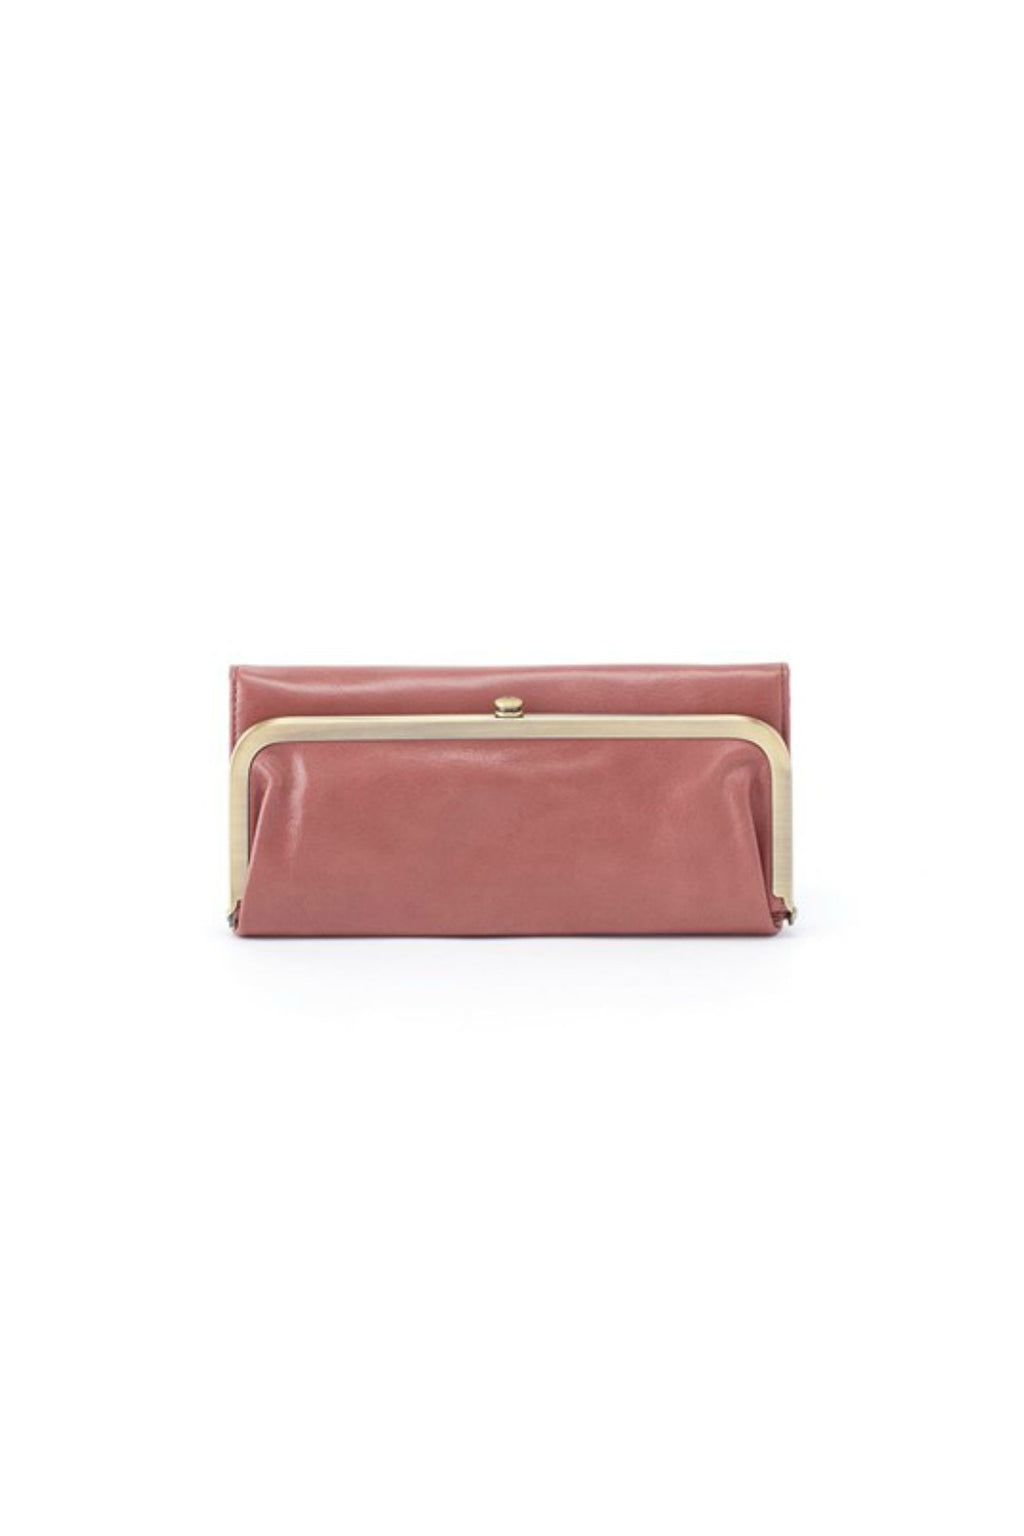 Hobo Rachel Wallet - Burnished Rose